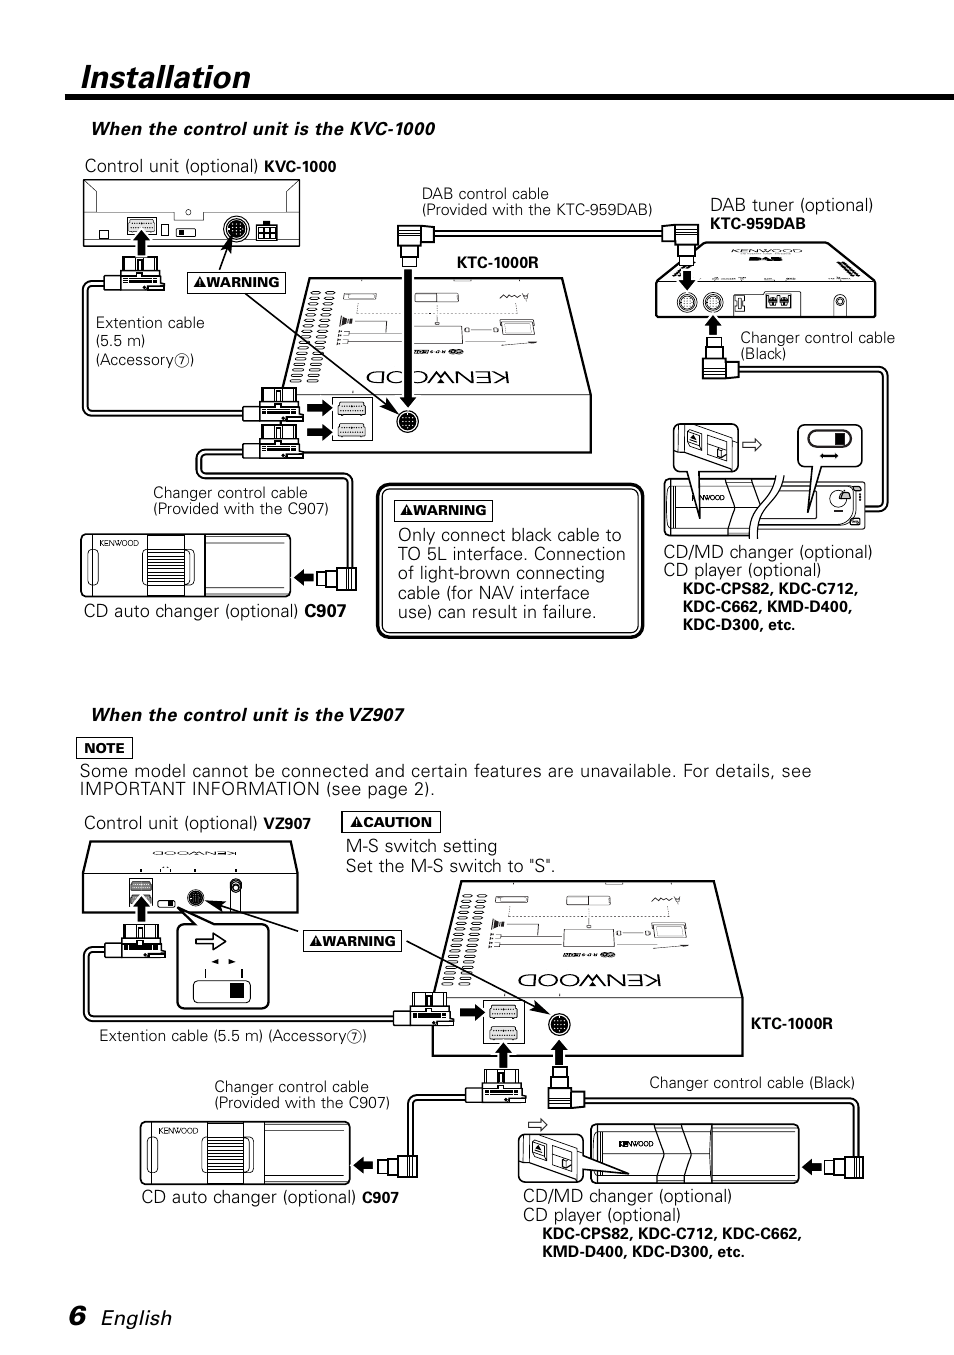 hight resolution of wiring diagram kdc d300 cd player wiring library when the control unit is the kvc 1000